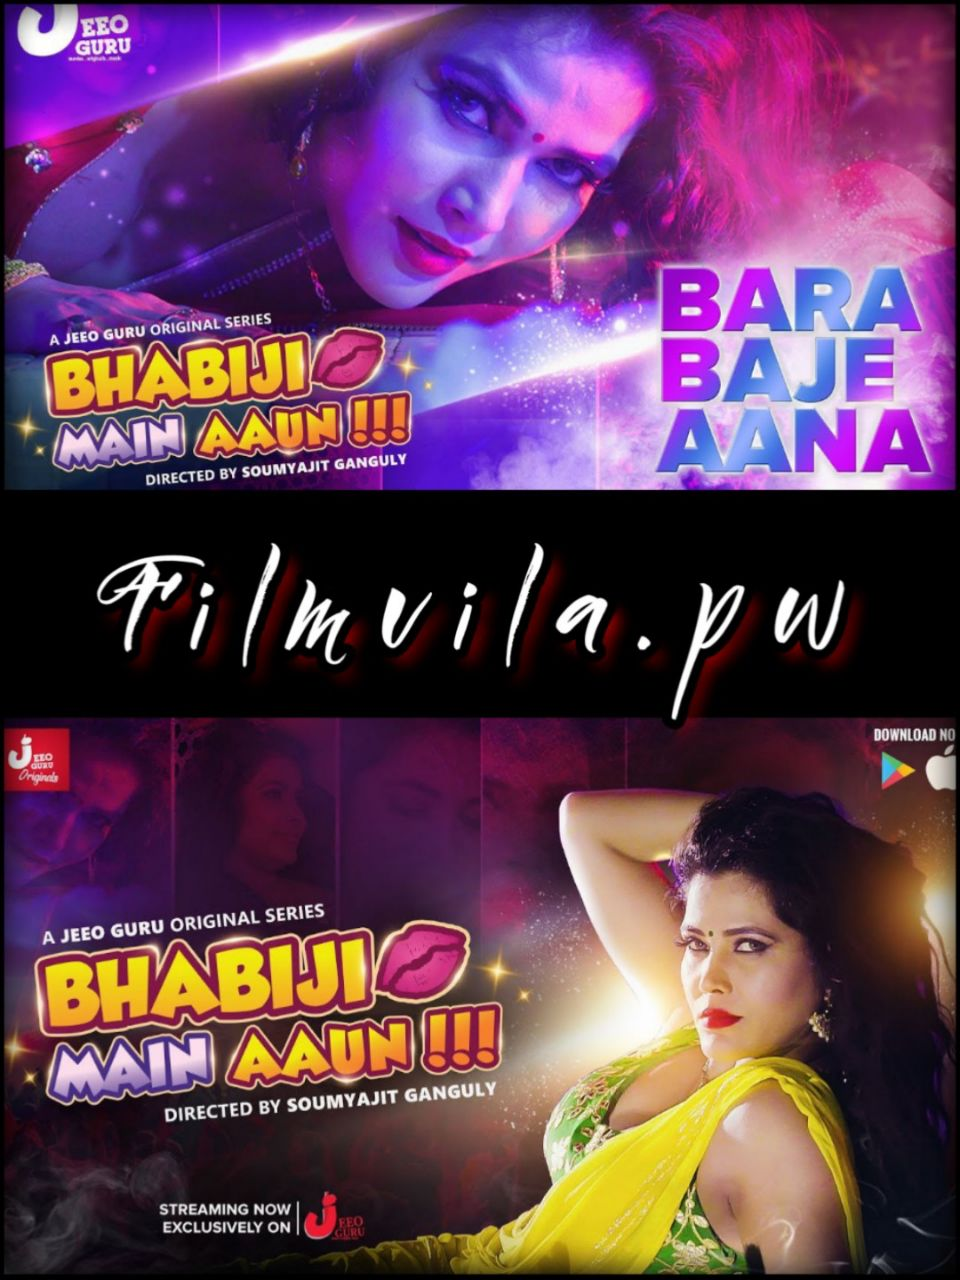 18+ Bhabhiji Main Aaun (2019) Hindi S01 Complete (Ep01-07) Hot Webseries By Jeeo Guru Original Hindi 720p,480p HDRip x264